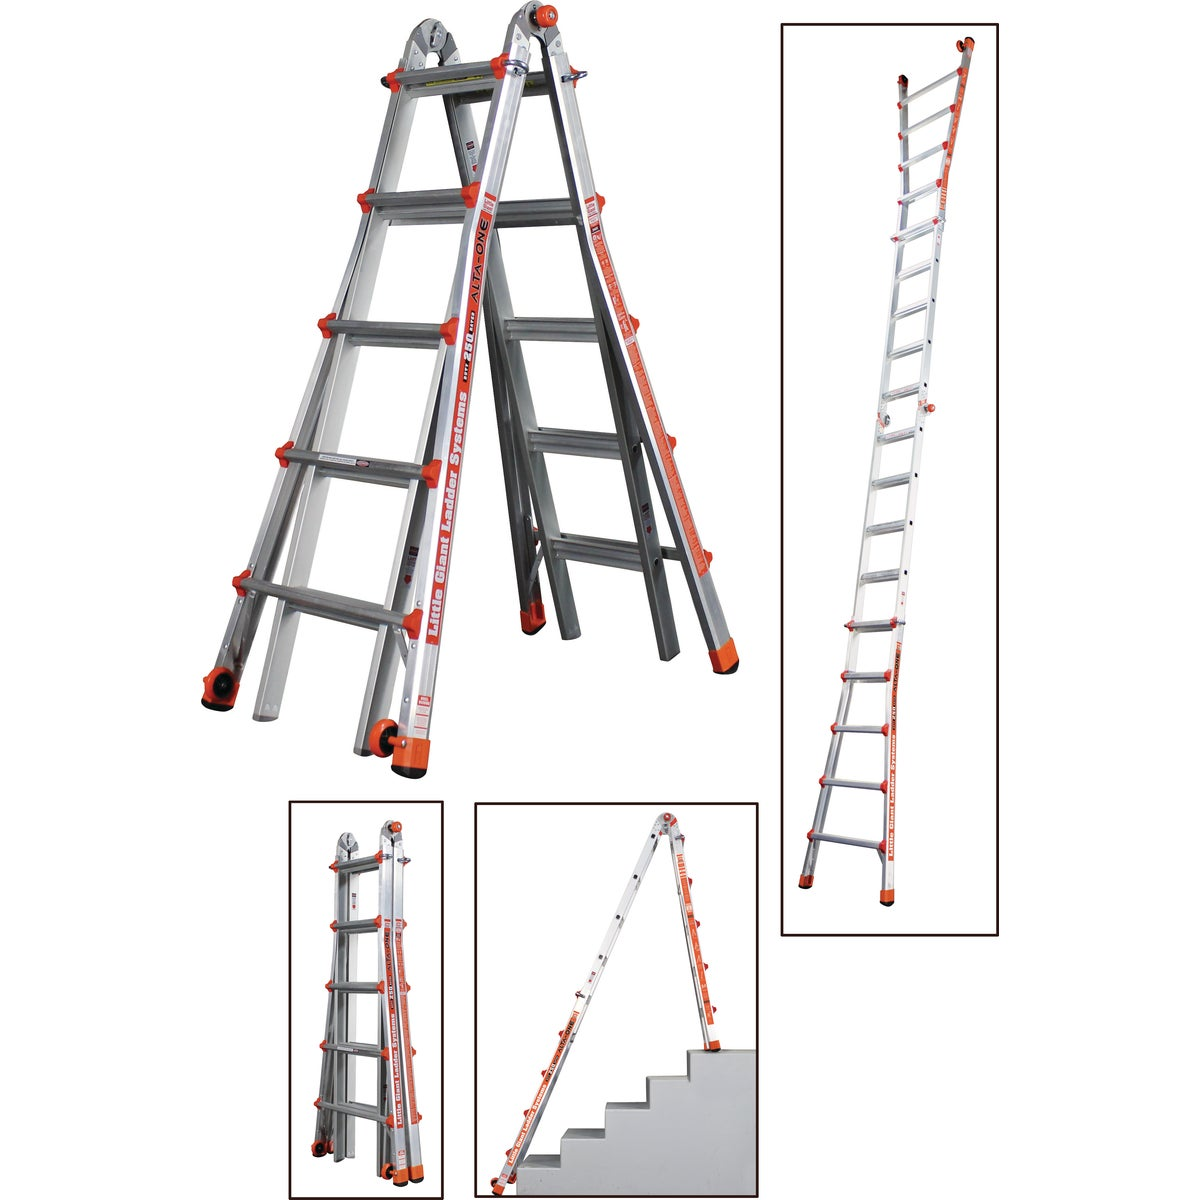 22' TELESCOPING LADDER